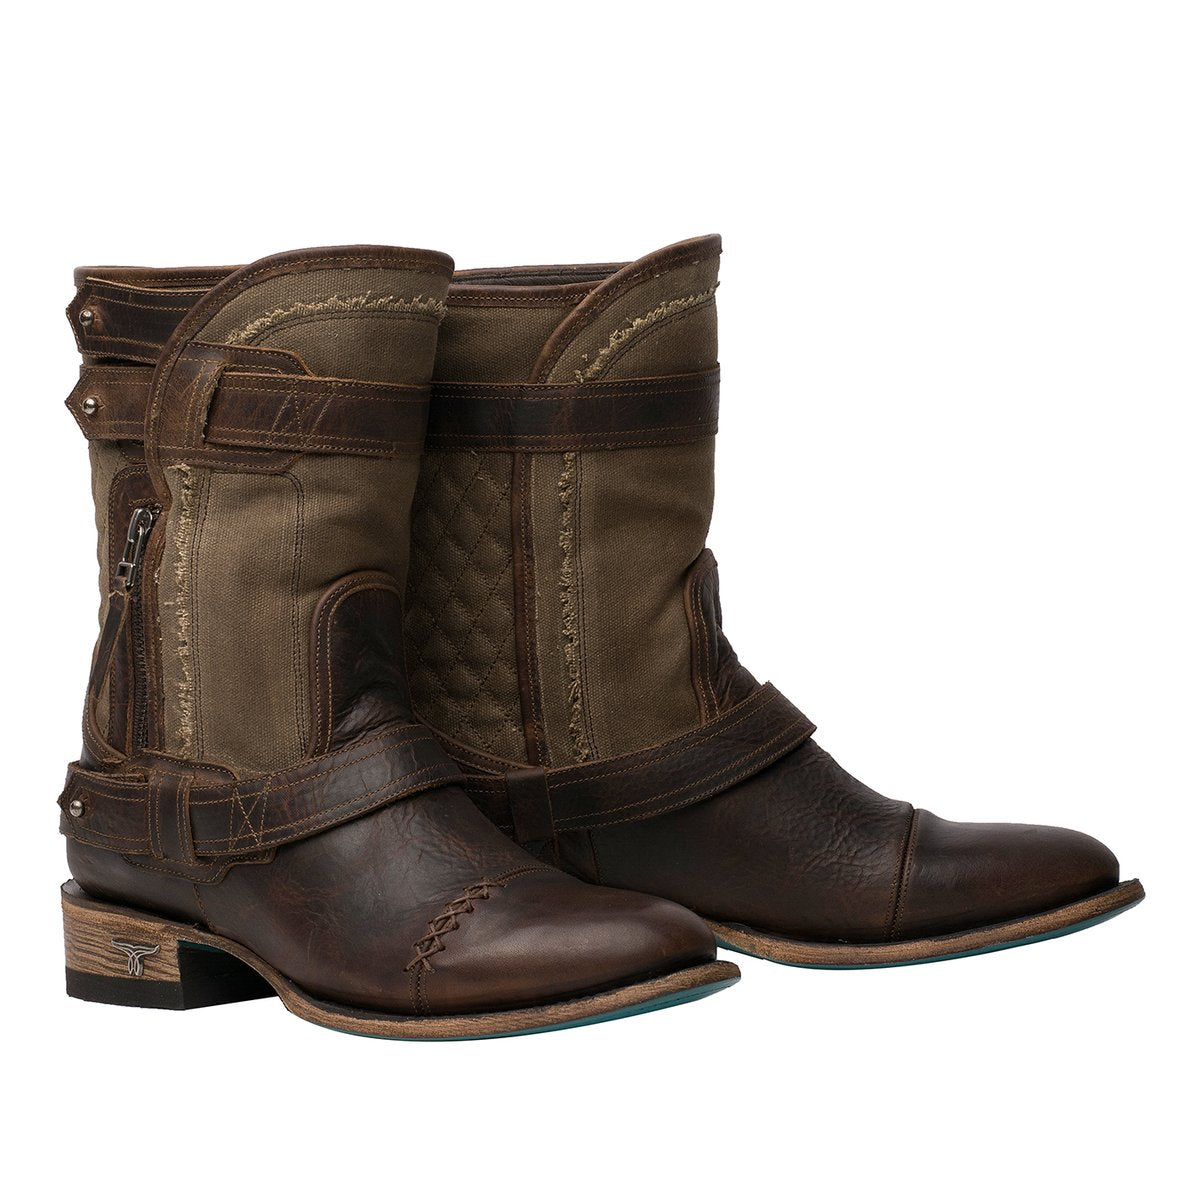 Dustoff Ladies Bootie | Size Worn Sage/Cognac 5 Lane | Lane Boots